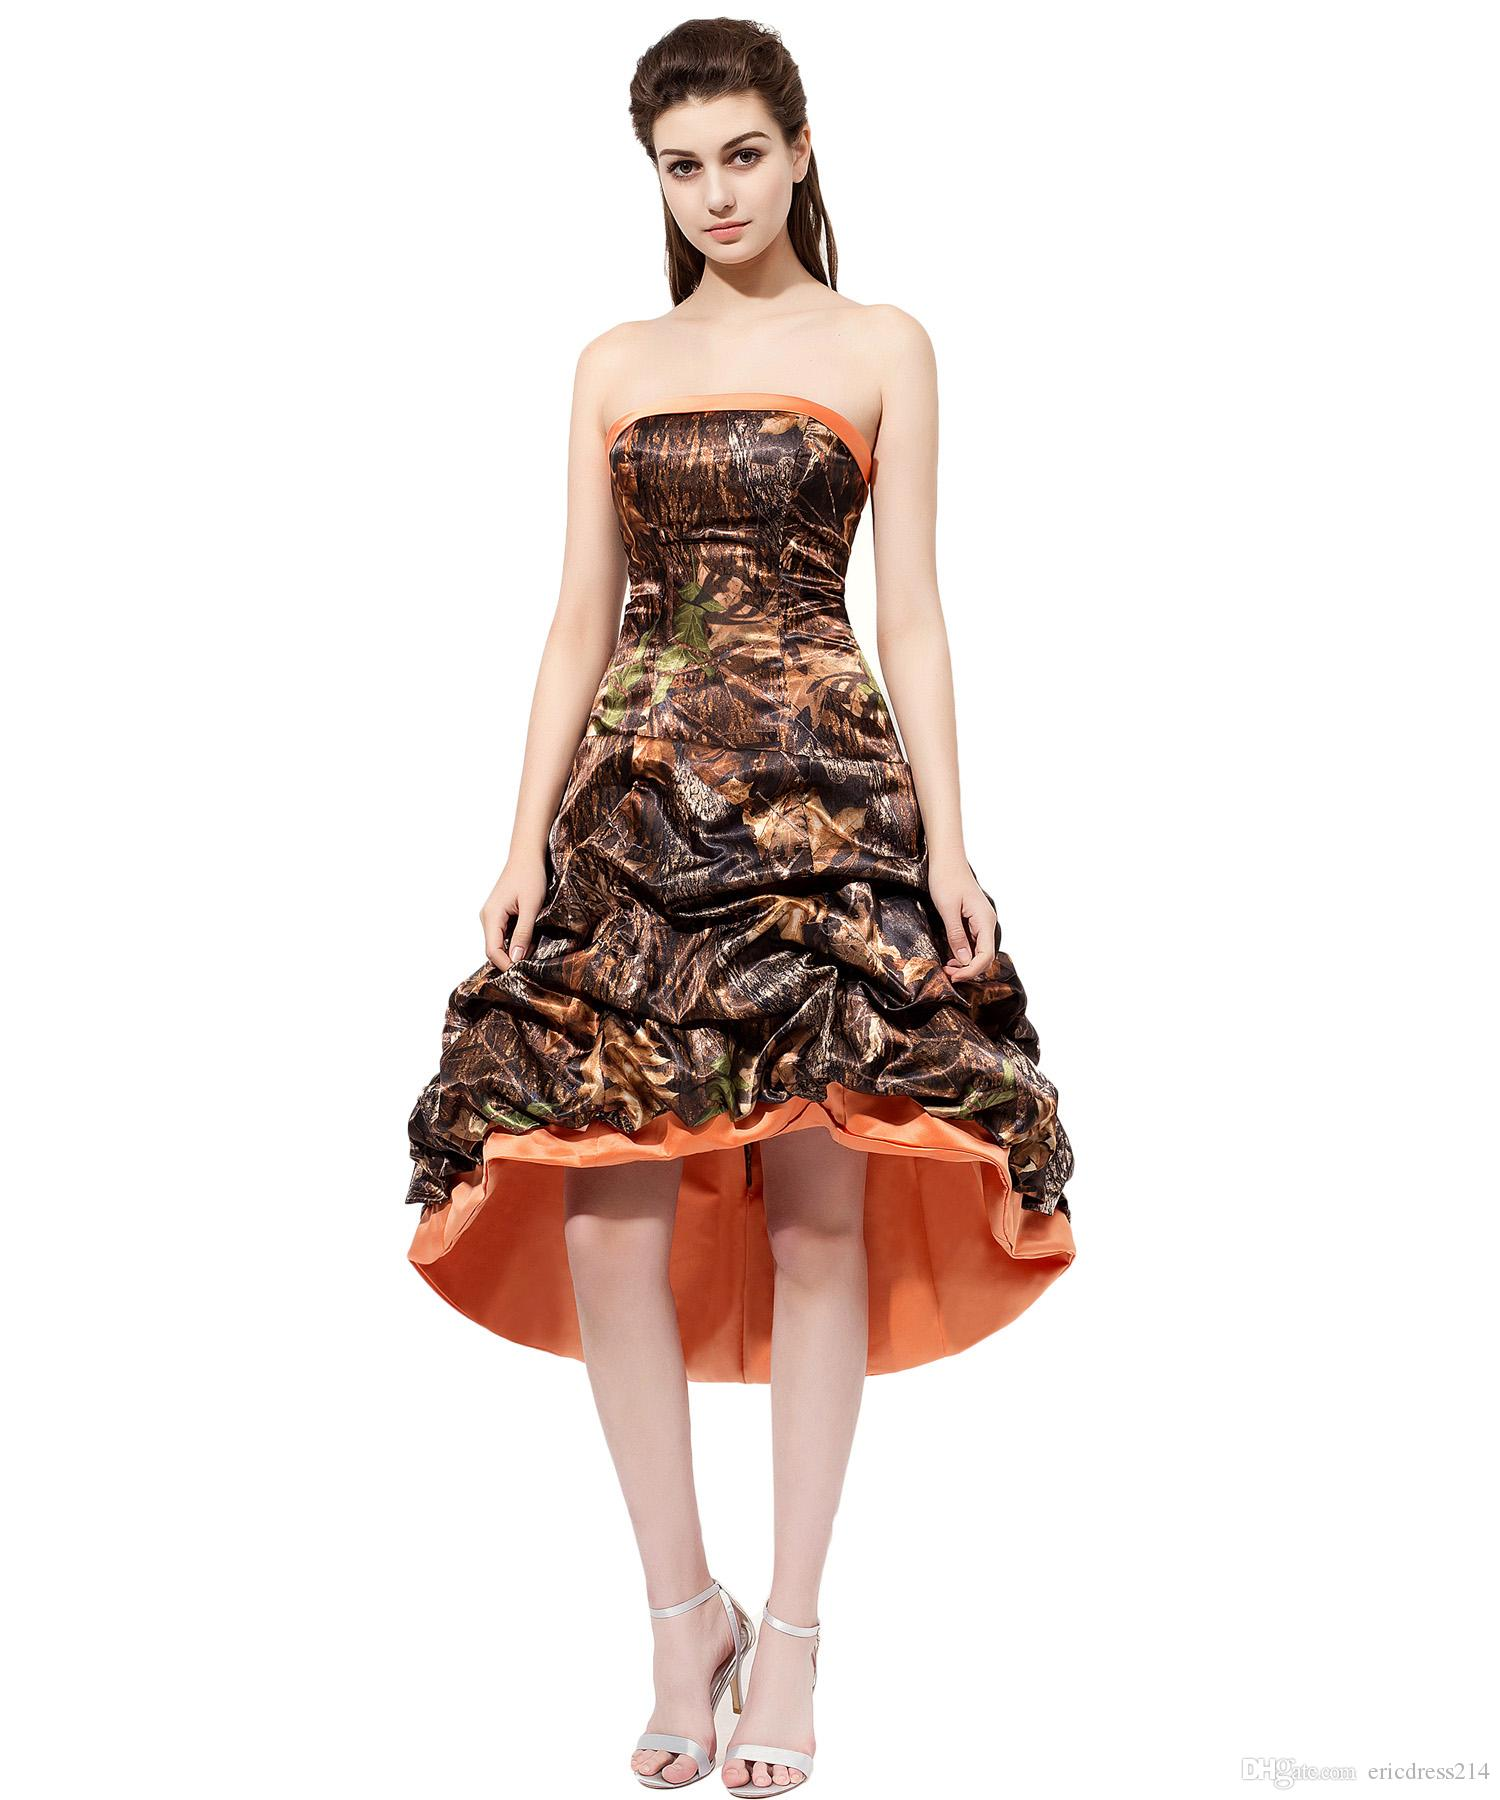 2017 High Low Camo Bridesmaid Dresses With Satin Edge Strapless Draped Maid Of Honor Dress Formal Prom Gowns Cheap Wedding Party Bridesmaids